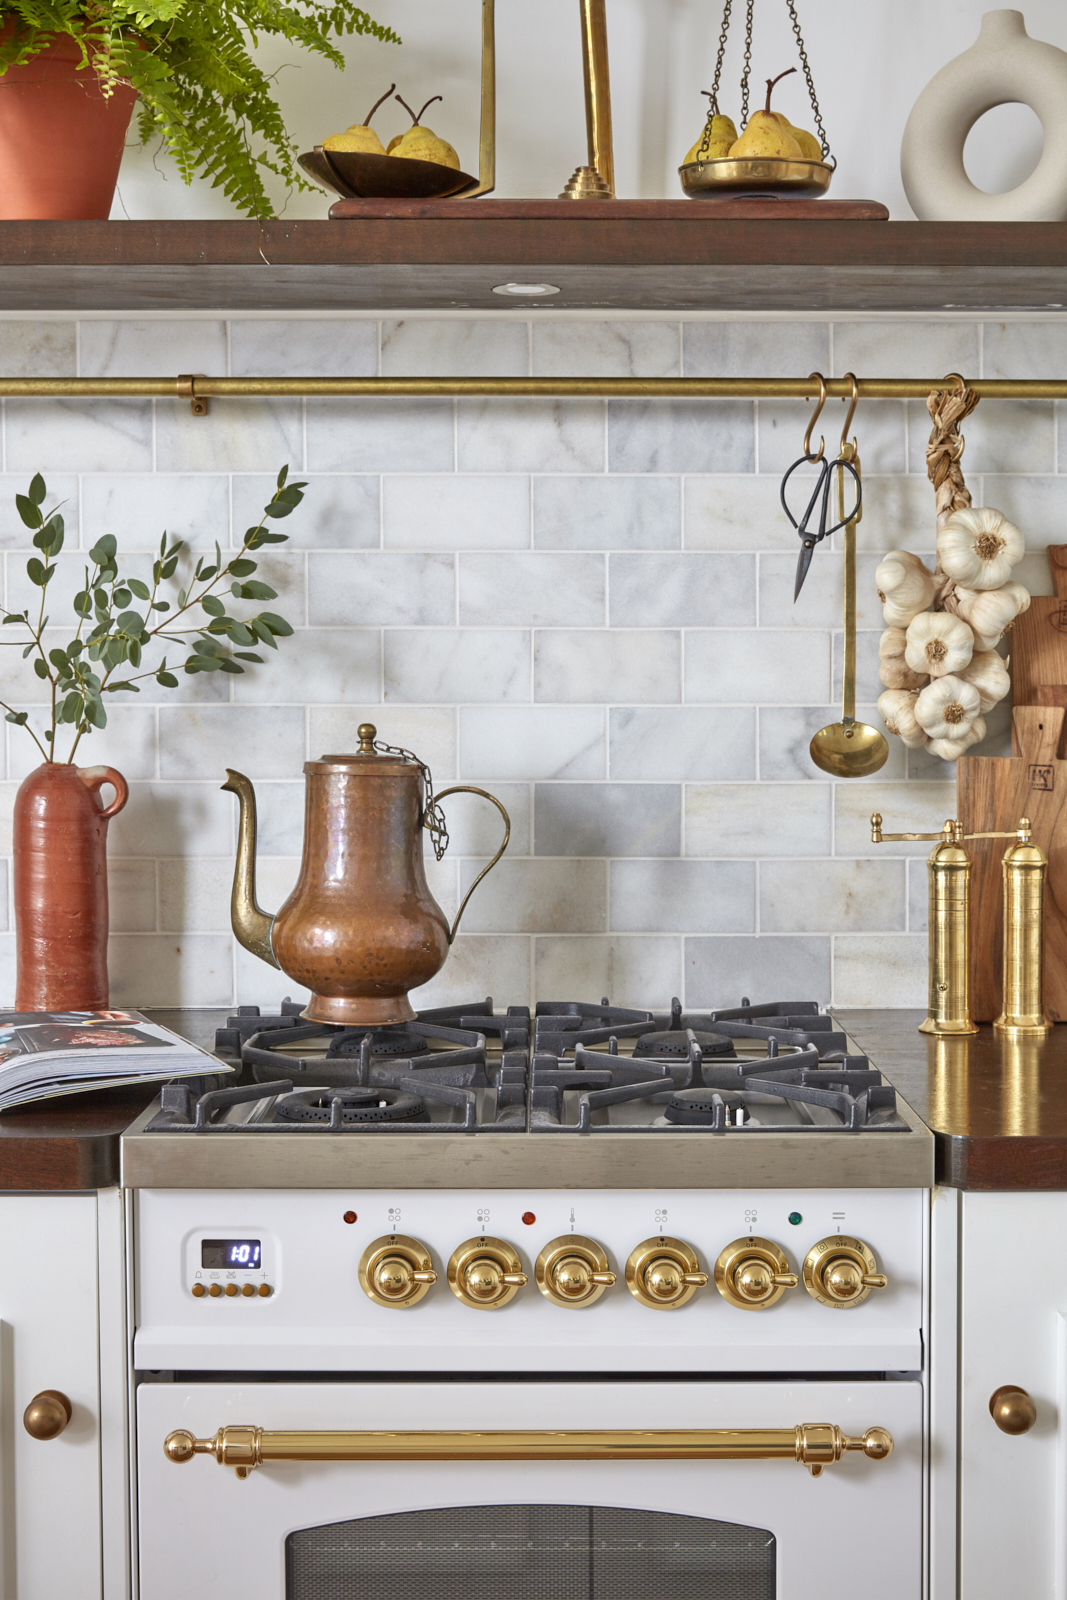 Belle Vue Georgian apartment with white and brass kitchen